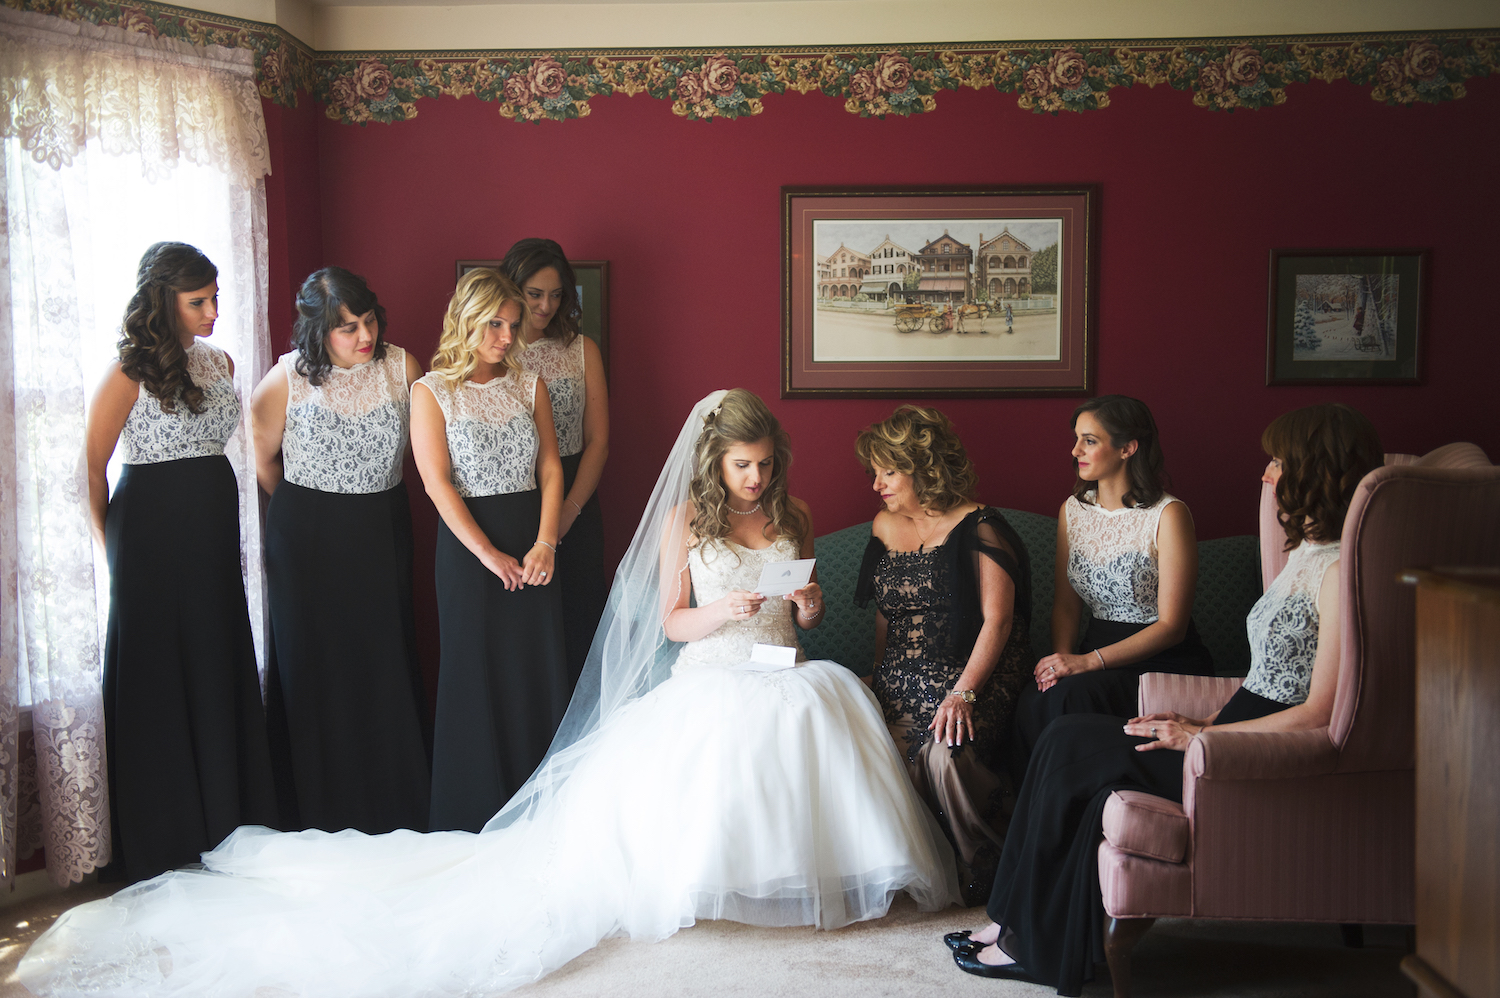 tricia-card-reading-with-mom-bridesmaids-wedding-photography-nj